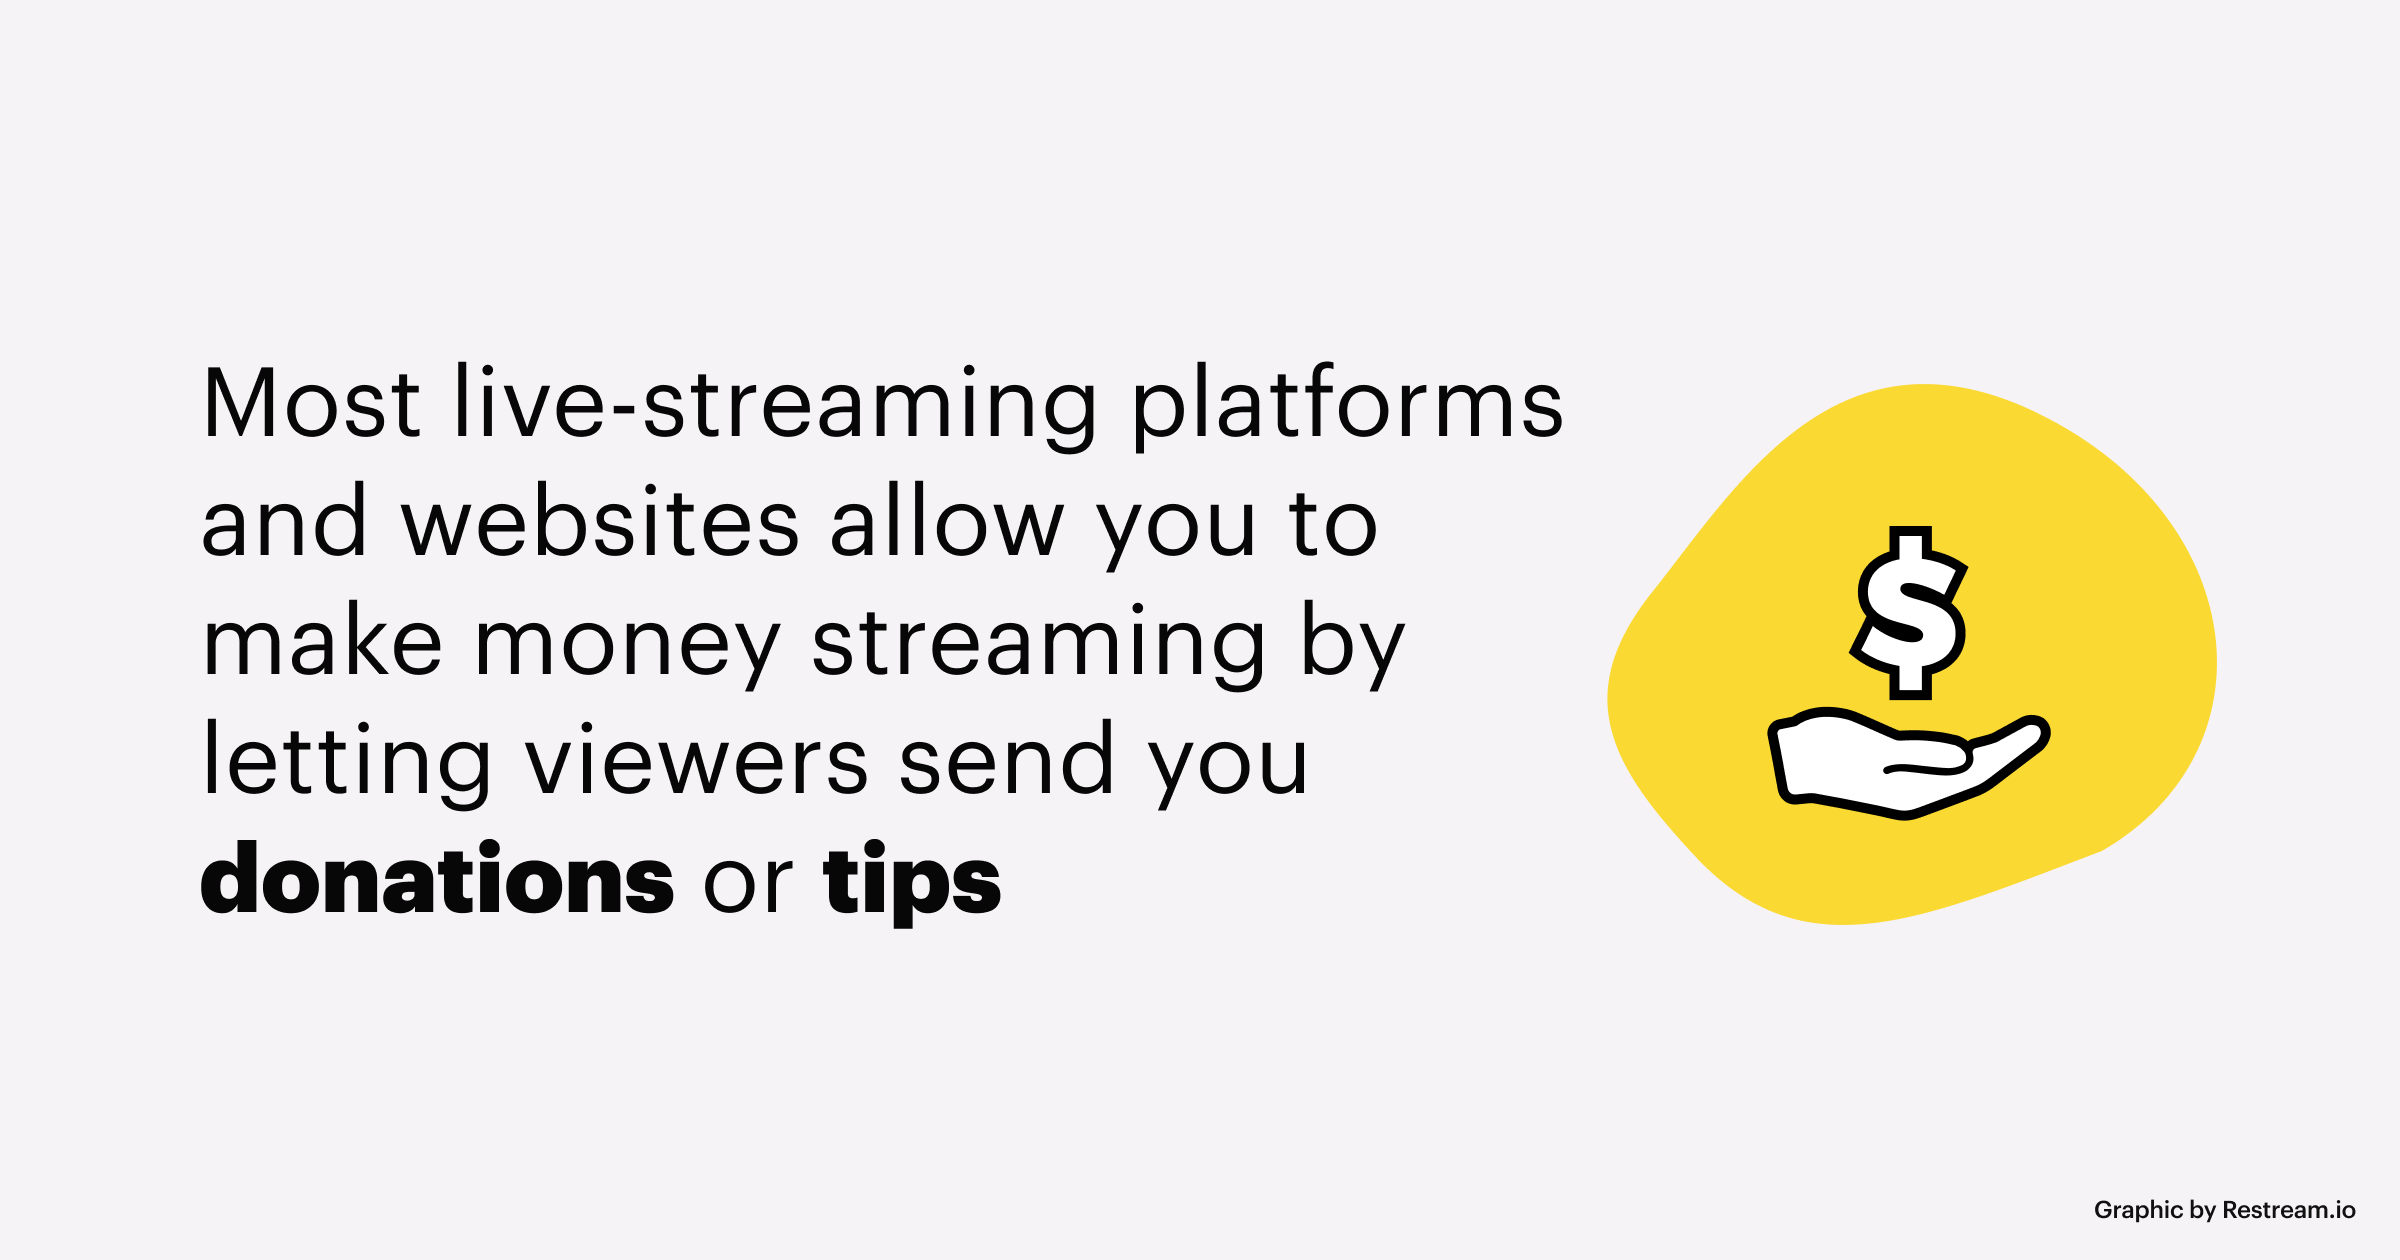 Most live-streaming platforms and websites allow you to make money streaming by letting viewers send you donations or tips